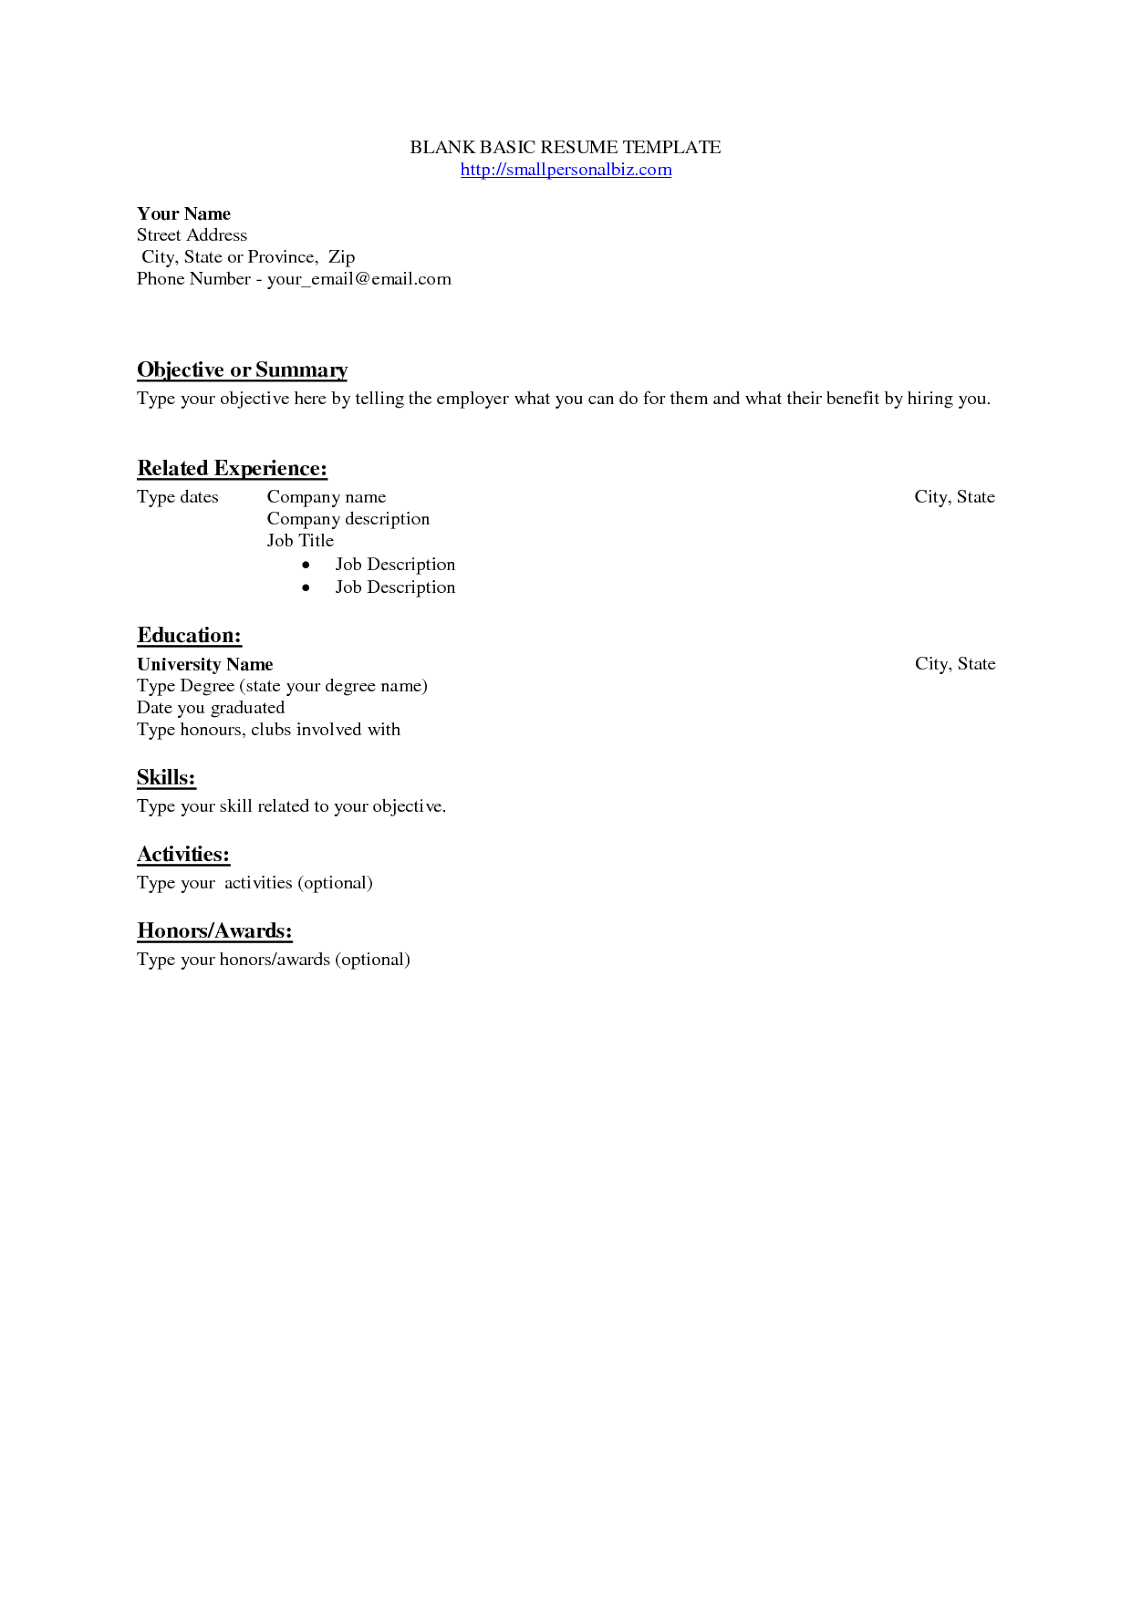 resume format for first job job resume template free resume easy2bresume2btemplate